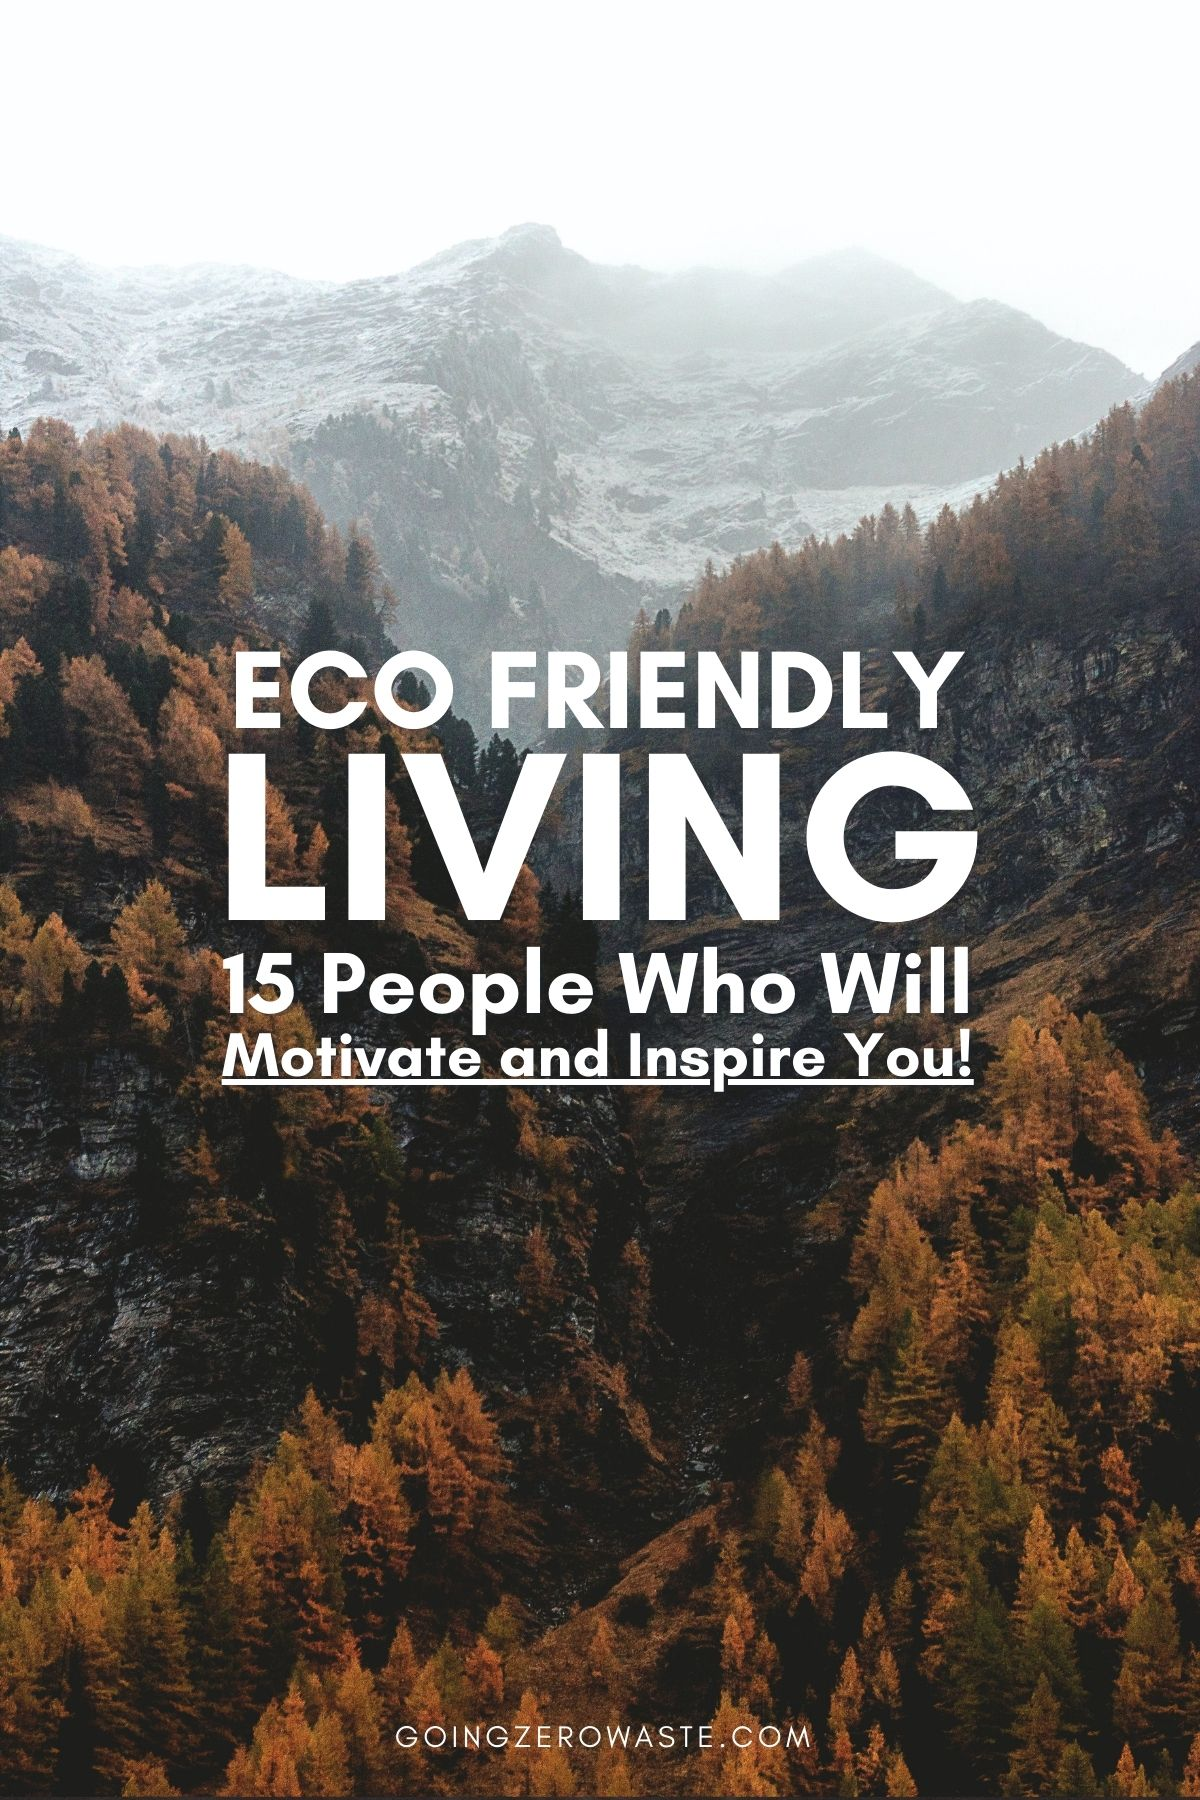 Eco friendly living: 15 people who will motivate you and inspire you!